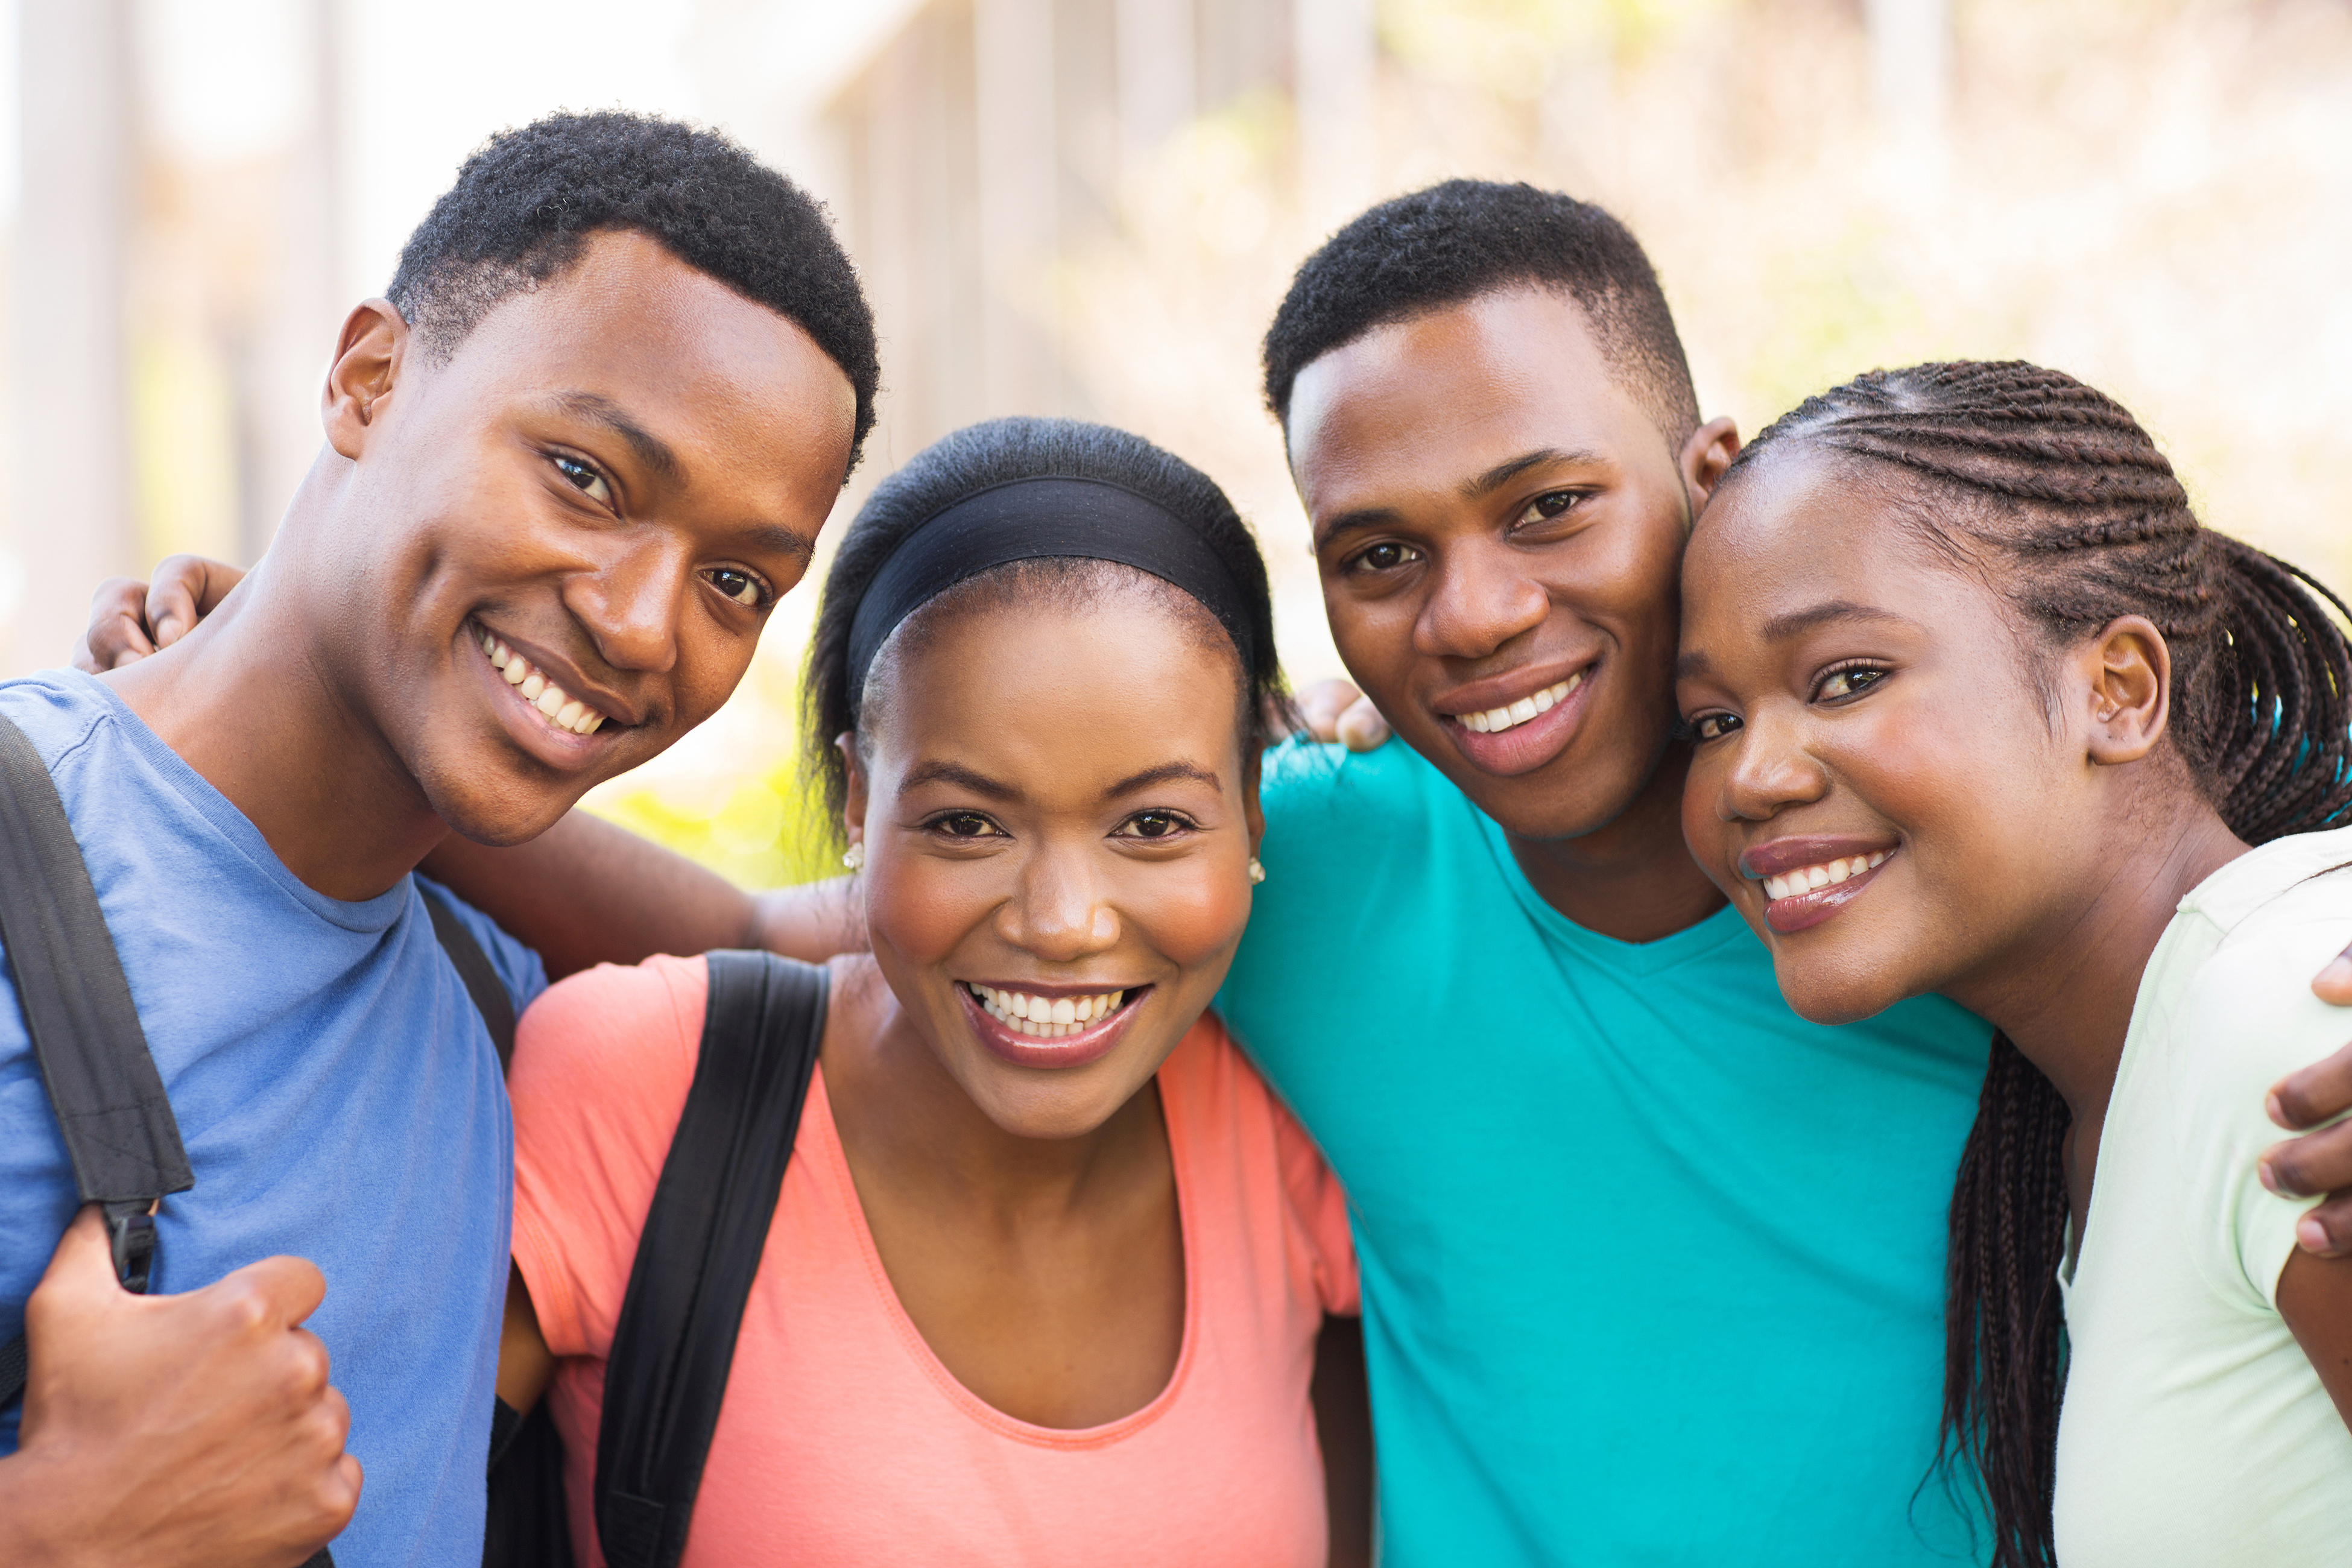 Girl scholarships for young black males